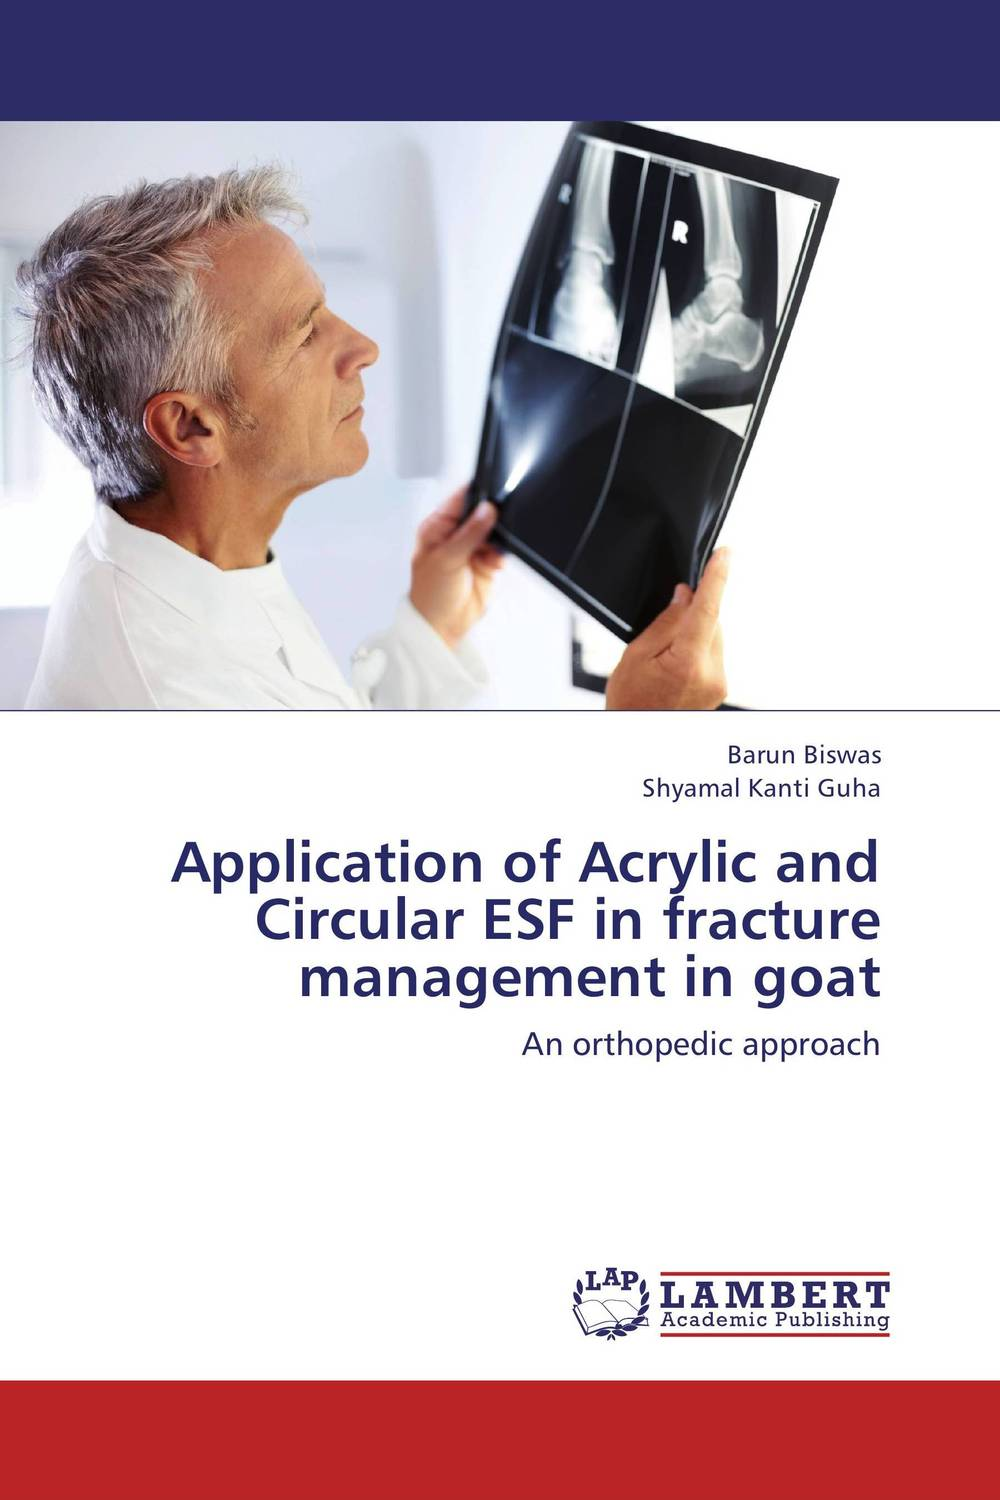 Application of Acrylic and Circular ESF in fracture management in goat computational modeling of damage and fracture in composite materials